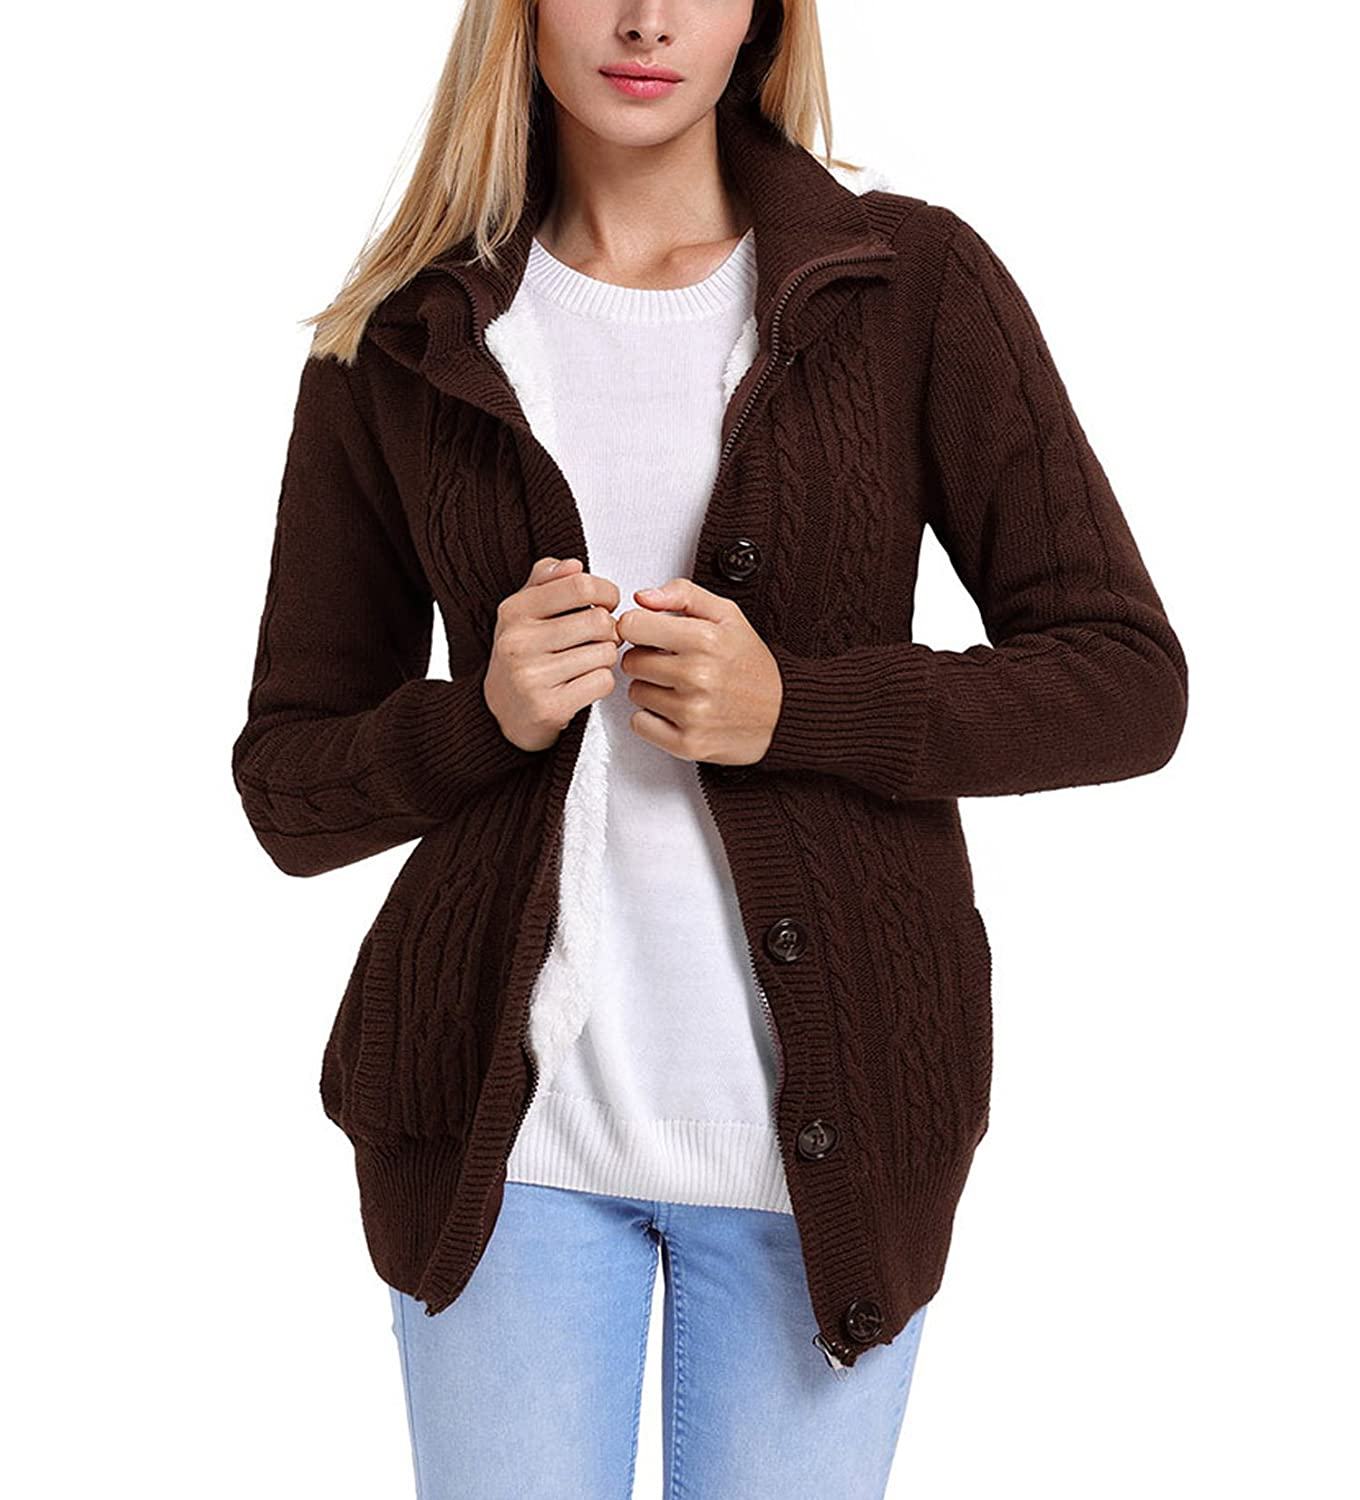 Fuwenni Women's Hooded Cable Knit Button Down Fleece Sweater Cardigans Coats with Pockets